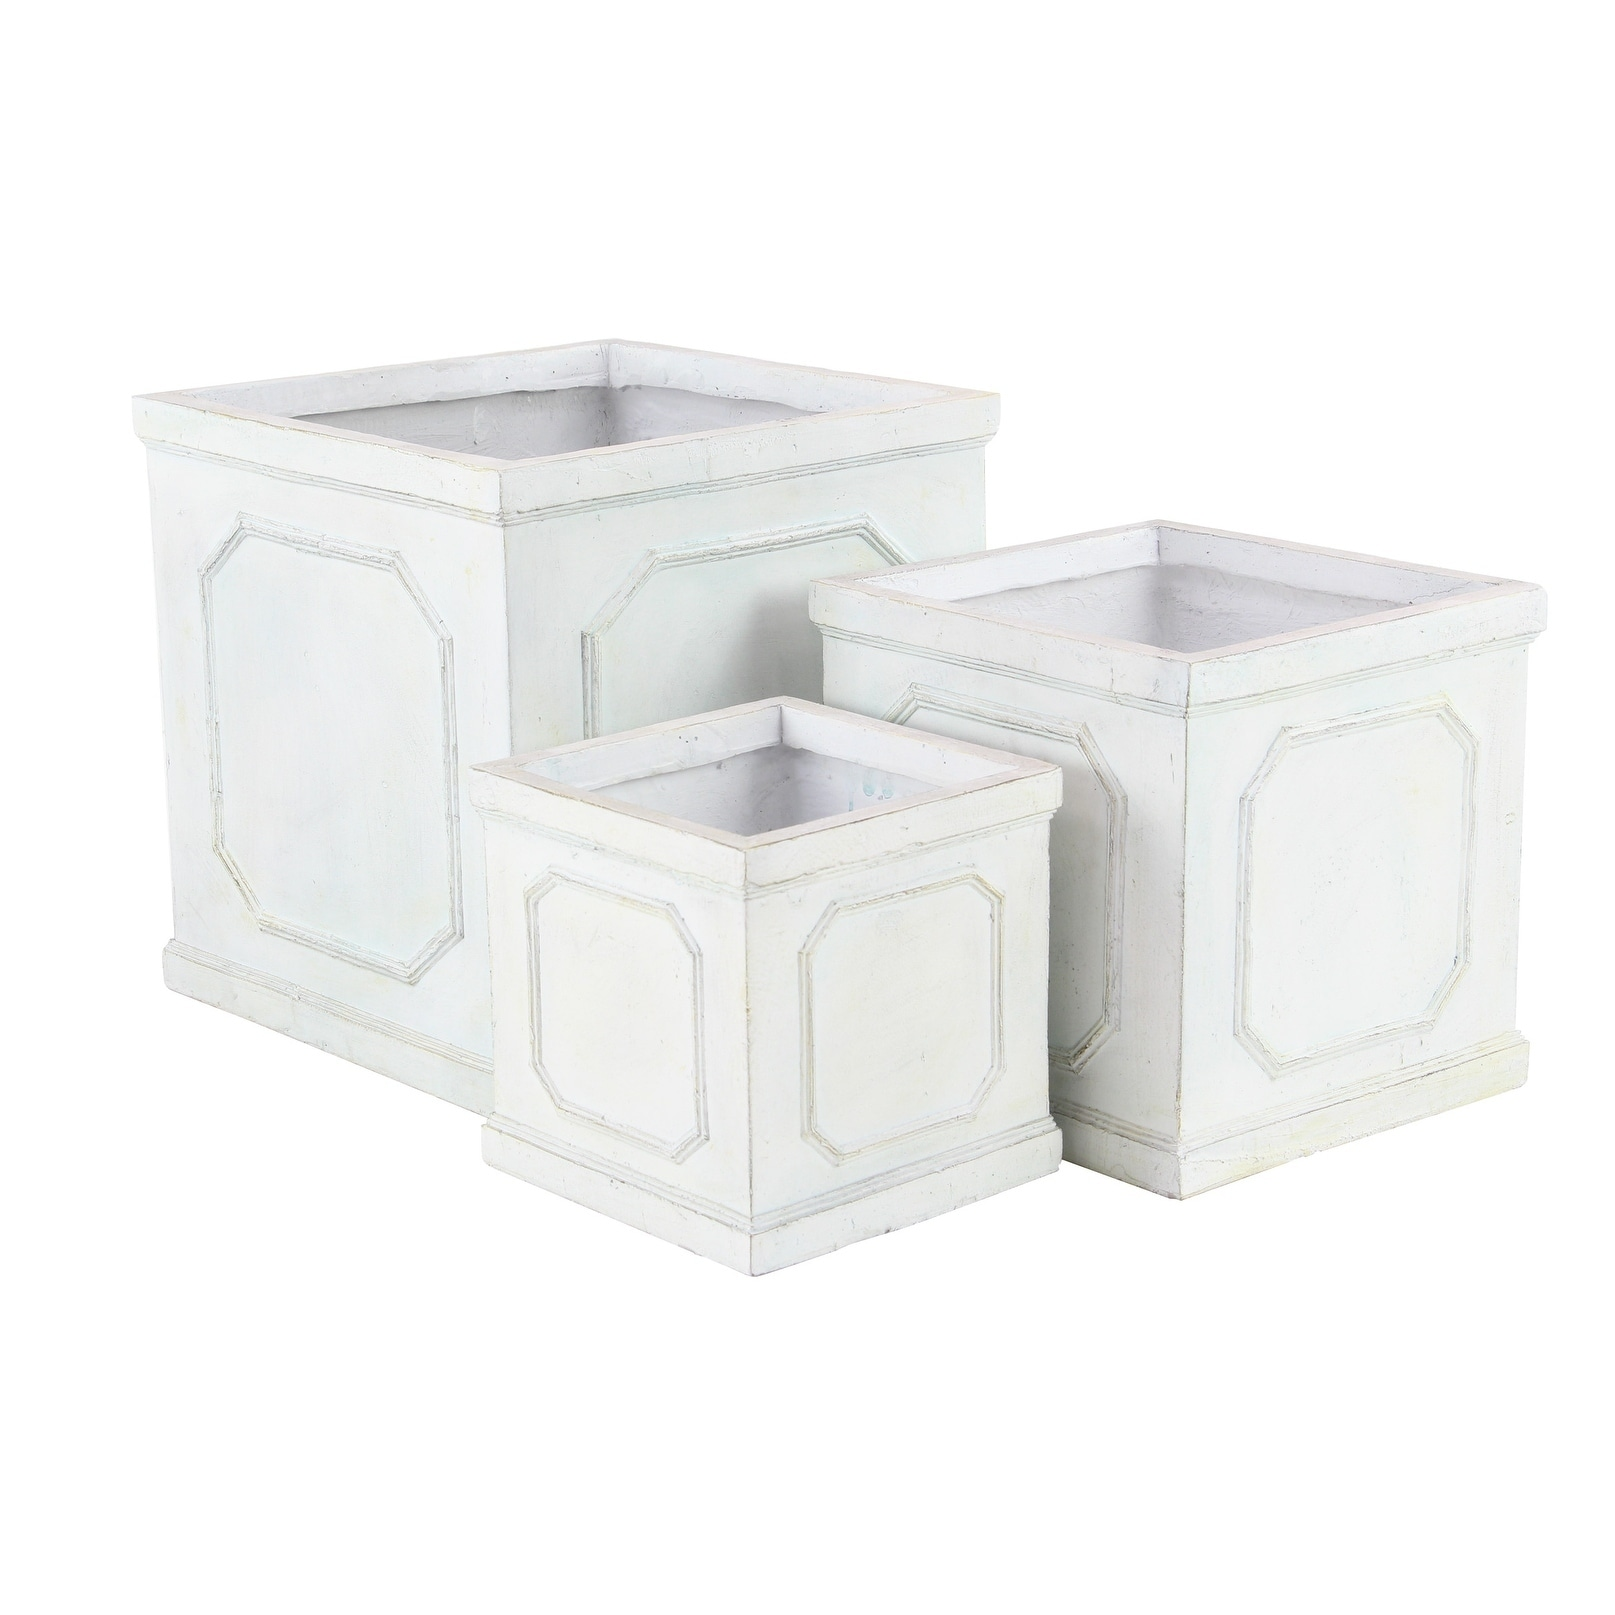 Set of 3 Rustic 11, 14 and 18 Inch Square White Planters by Studio 350